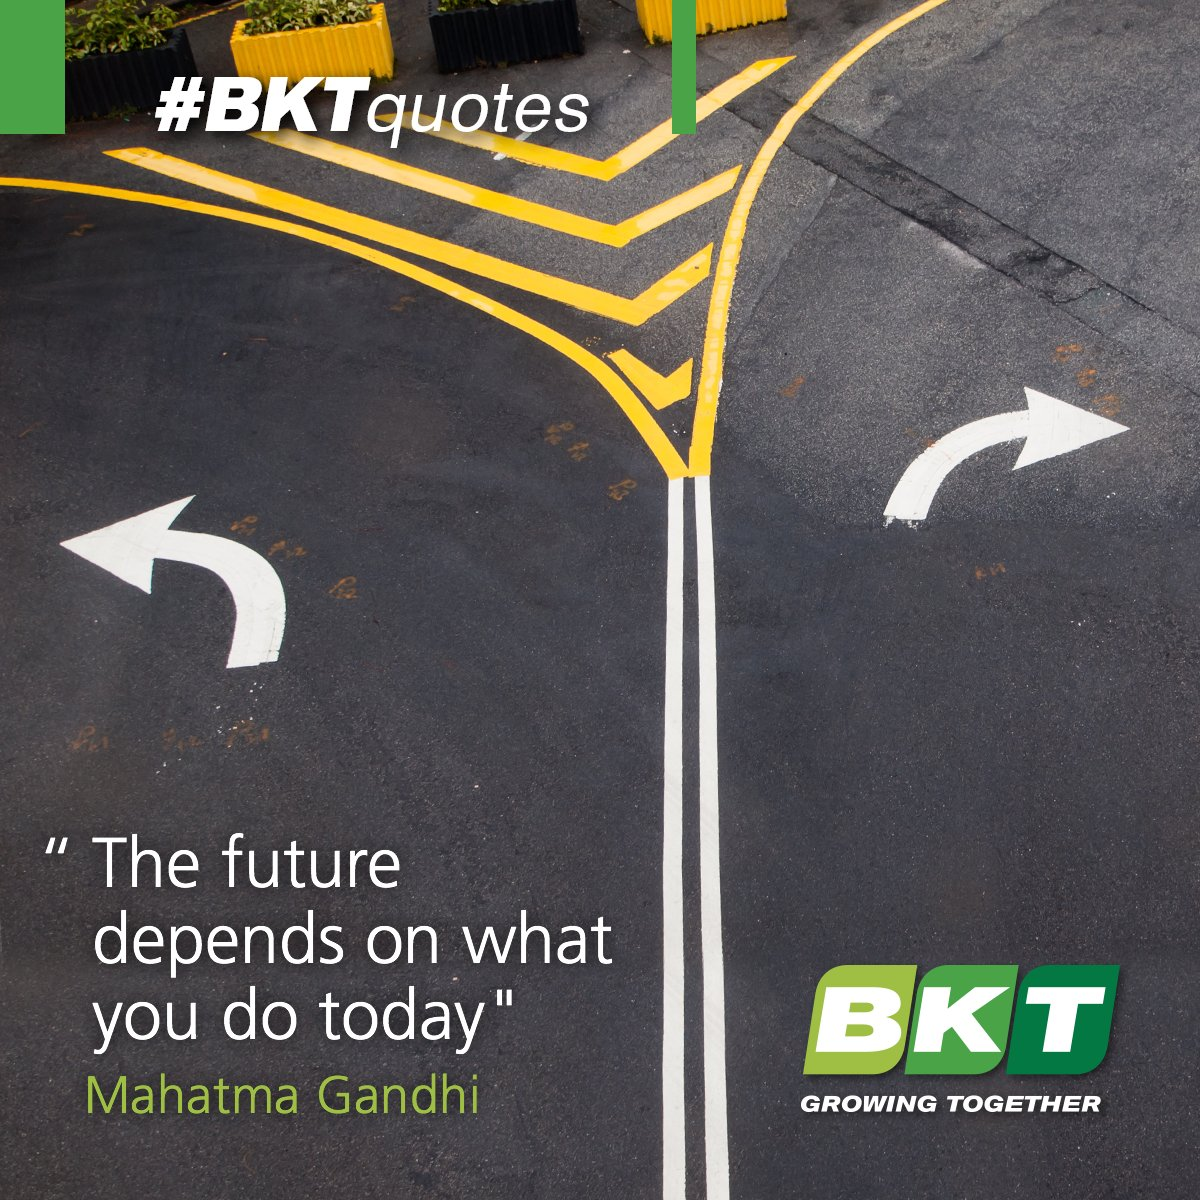 What have you done today to make your tomorrow? #BKTquotes #quote #quoteoftheday #future https://t.co/kkKQhOK4O4